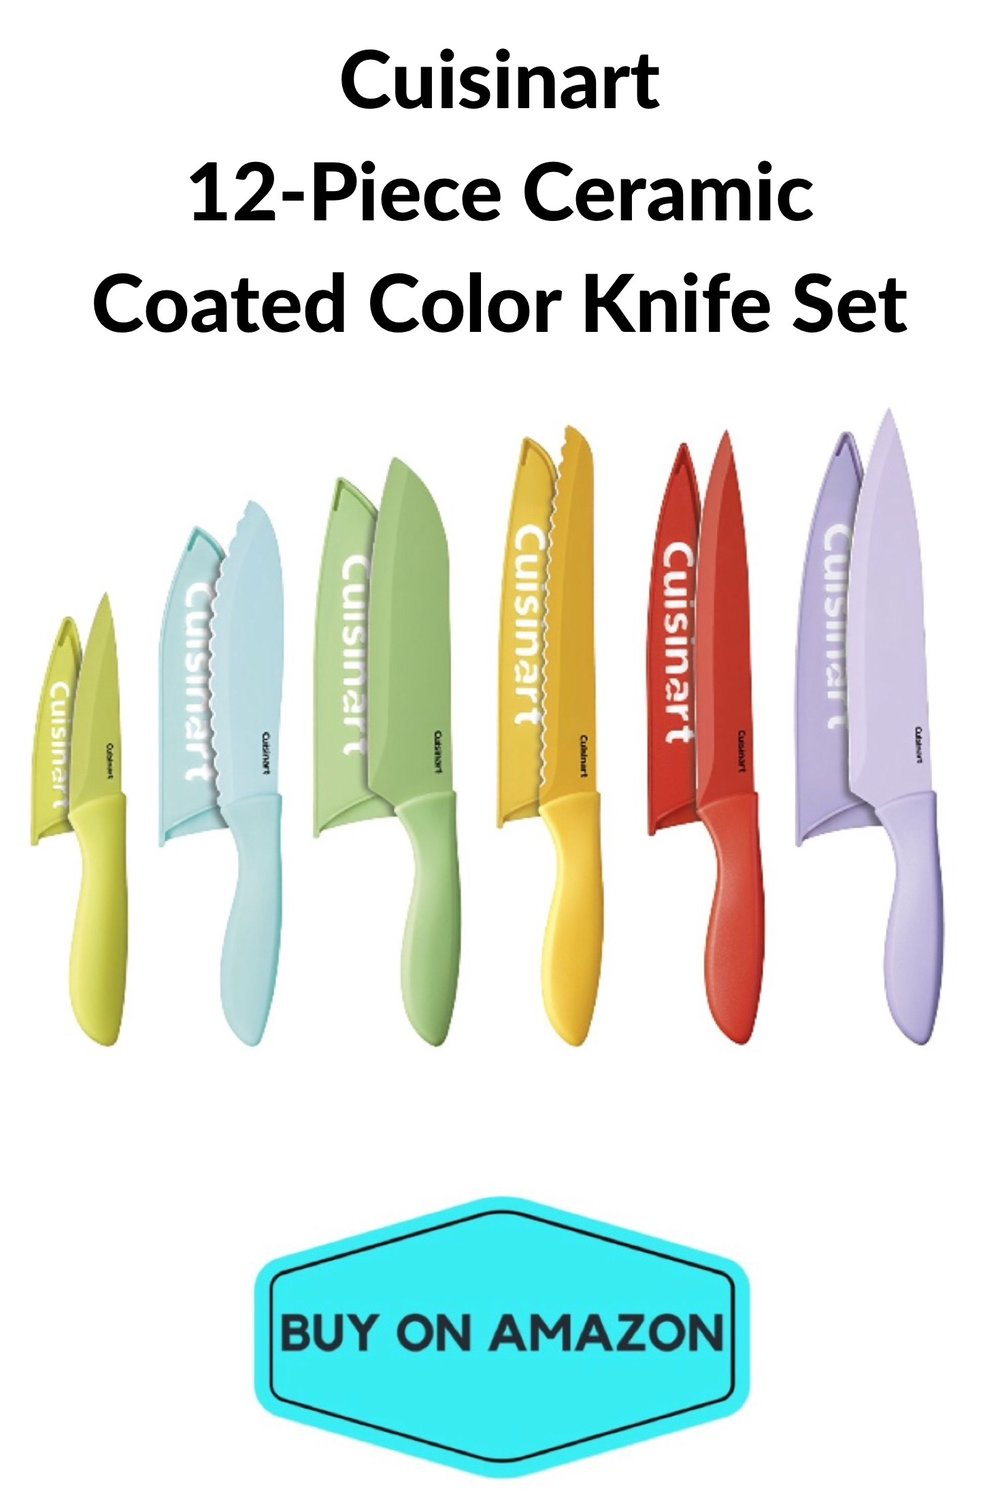 Cuisinart 12 pc Ceramic Coated Color Knife Set